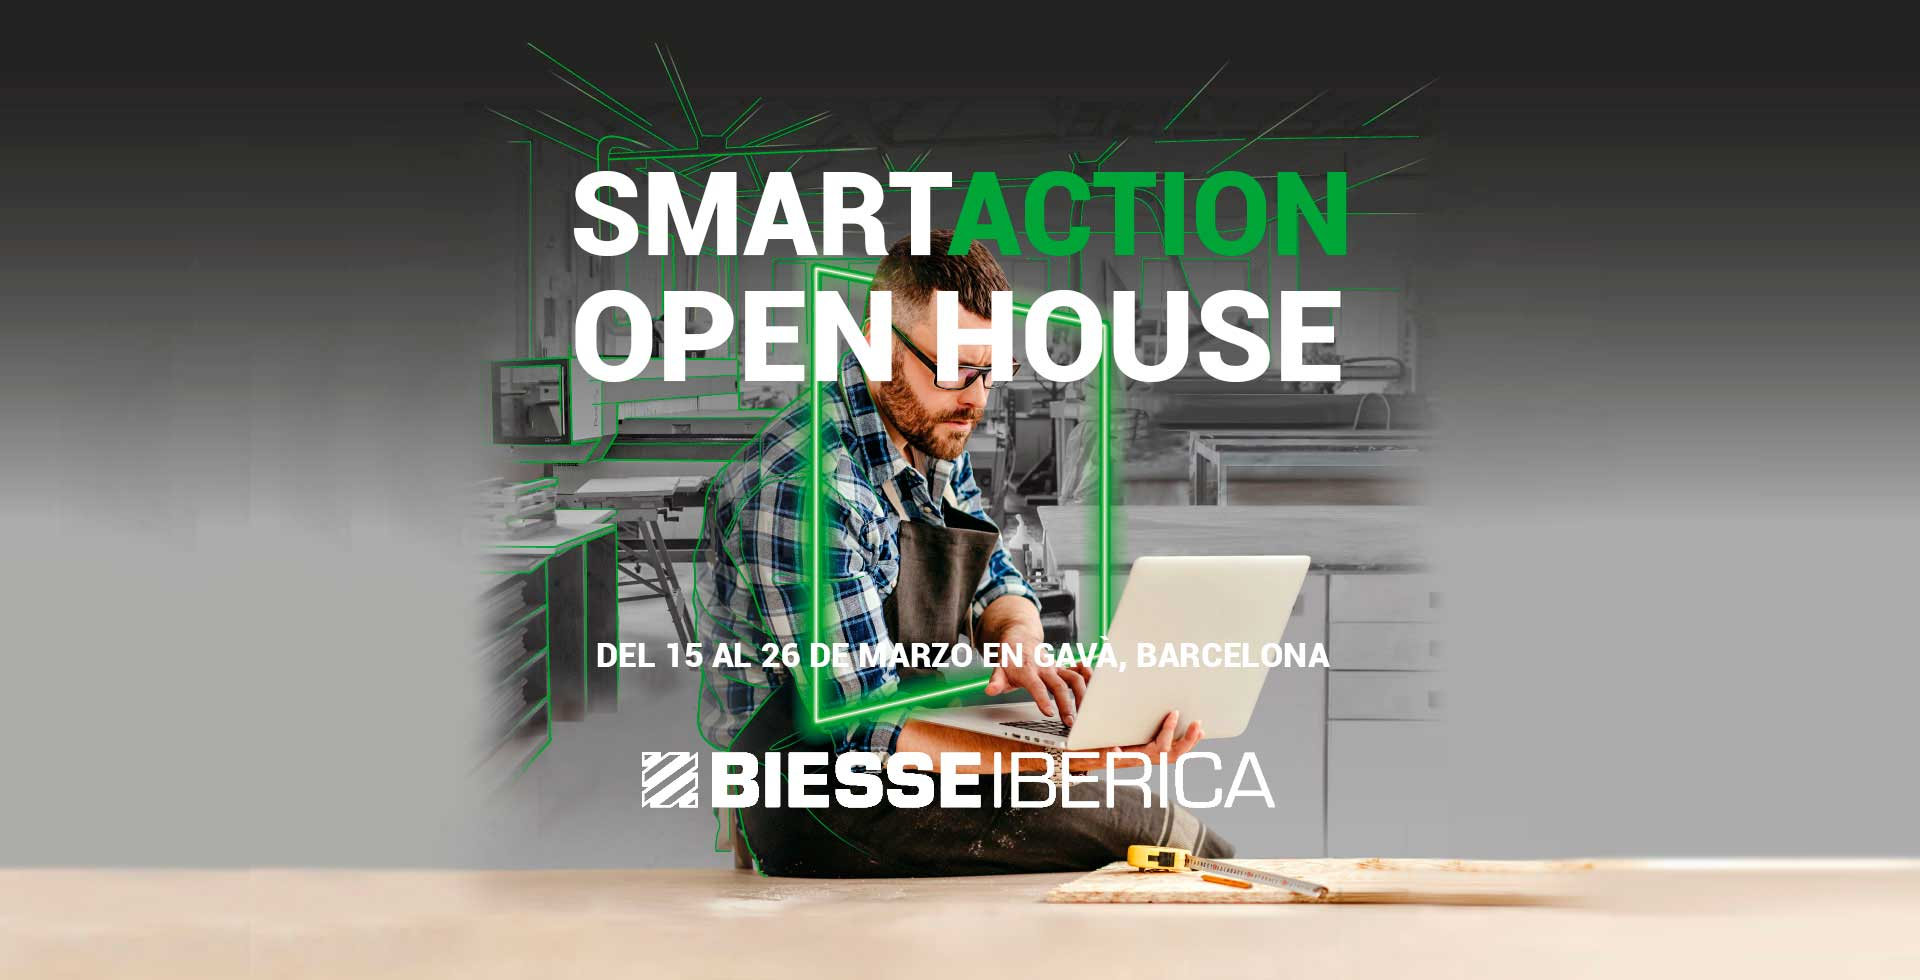 BIESSE IBERICA OPEN HOUSE SMARTACTION: Foto 11